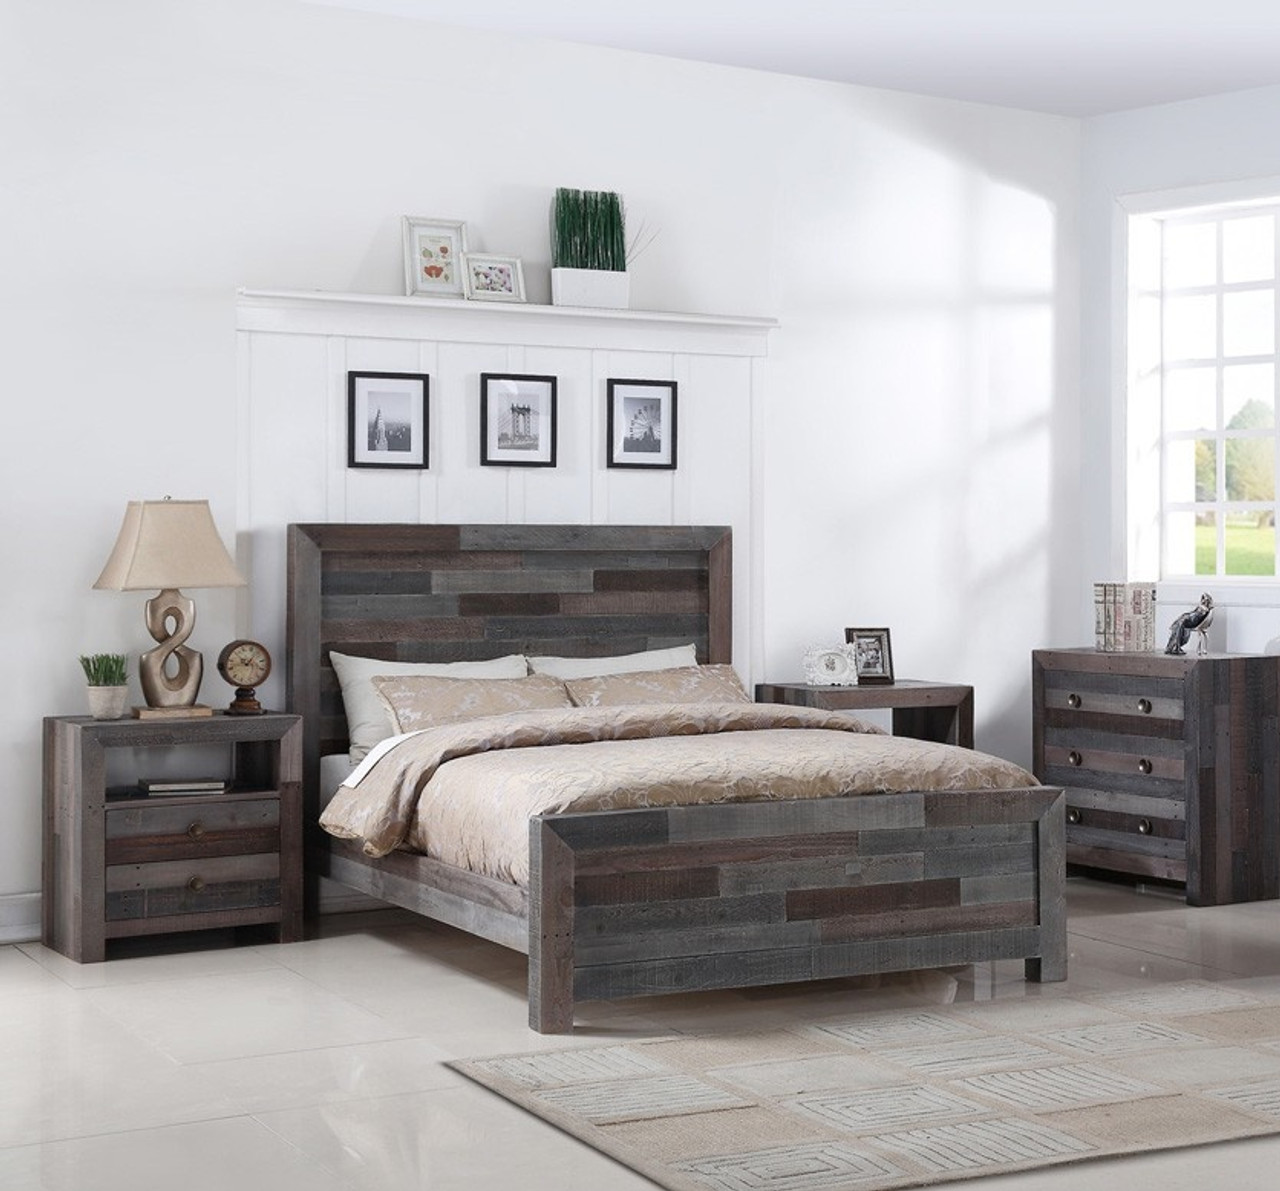 Angora Reclaimed Wood King Size Platform Bed Storm Zin Home